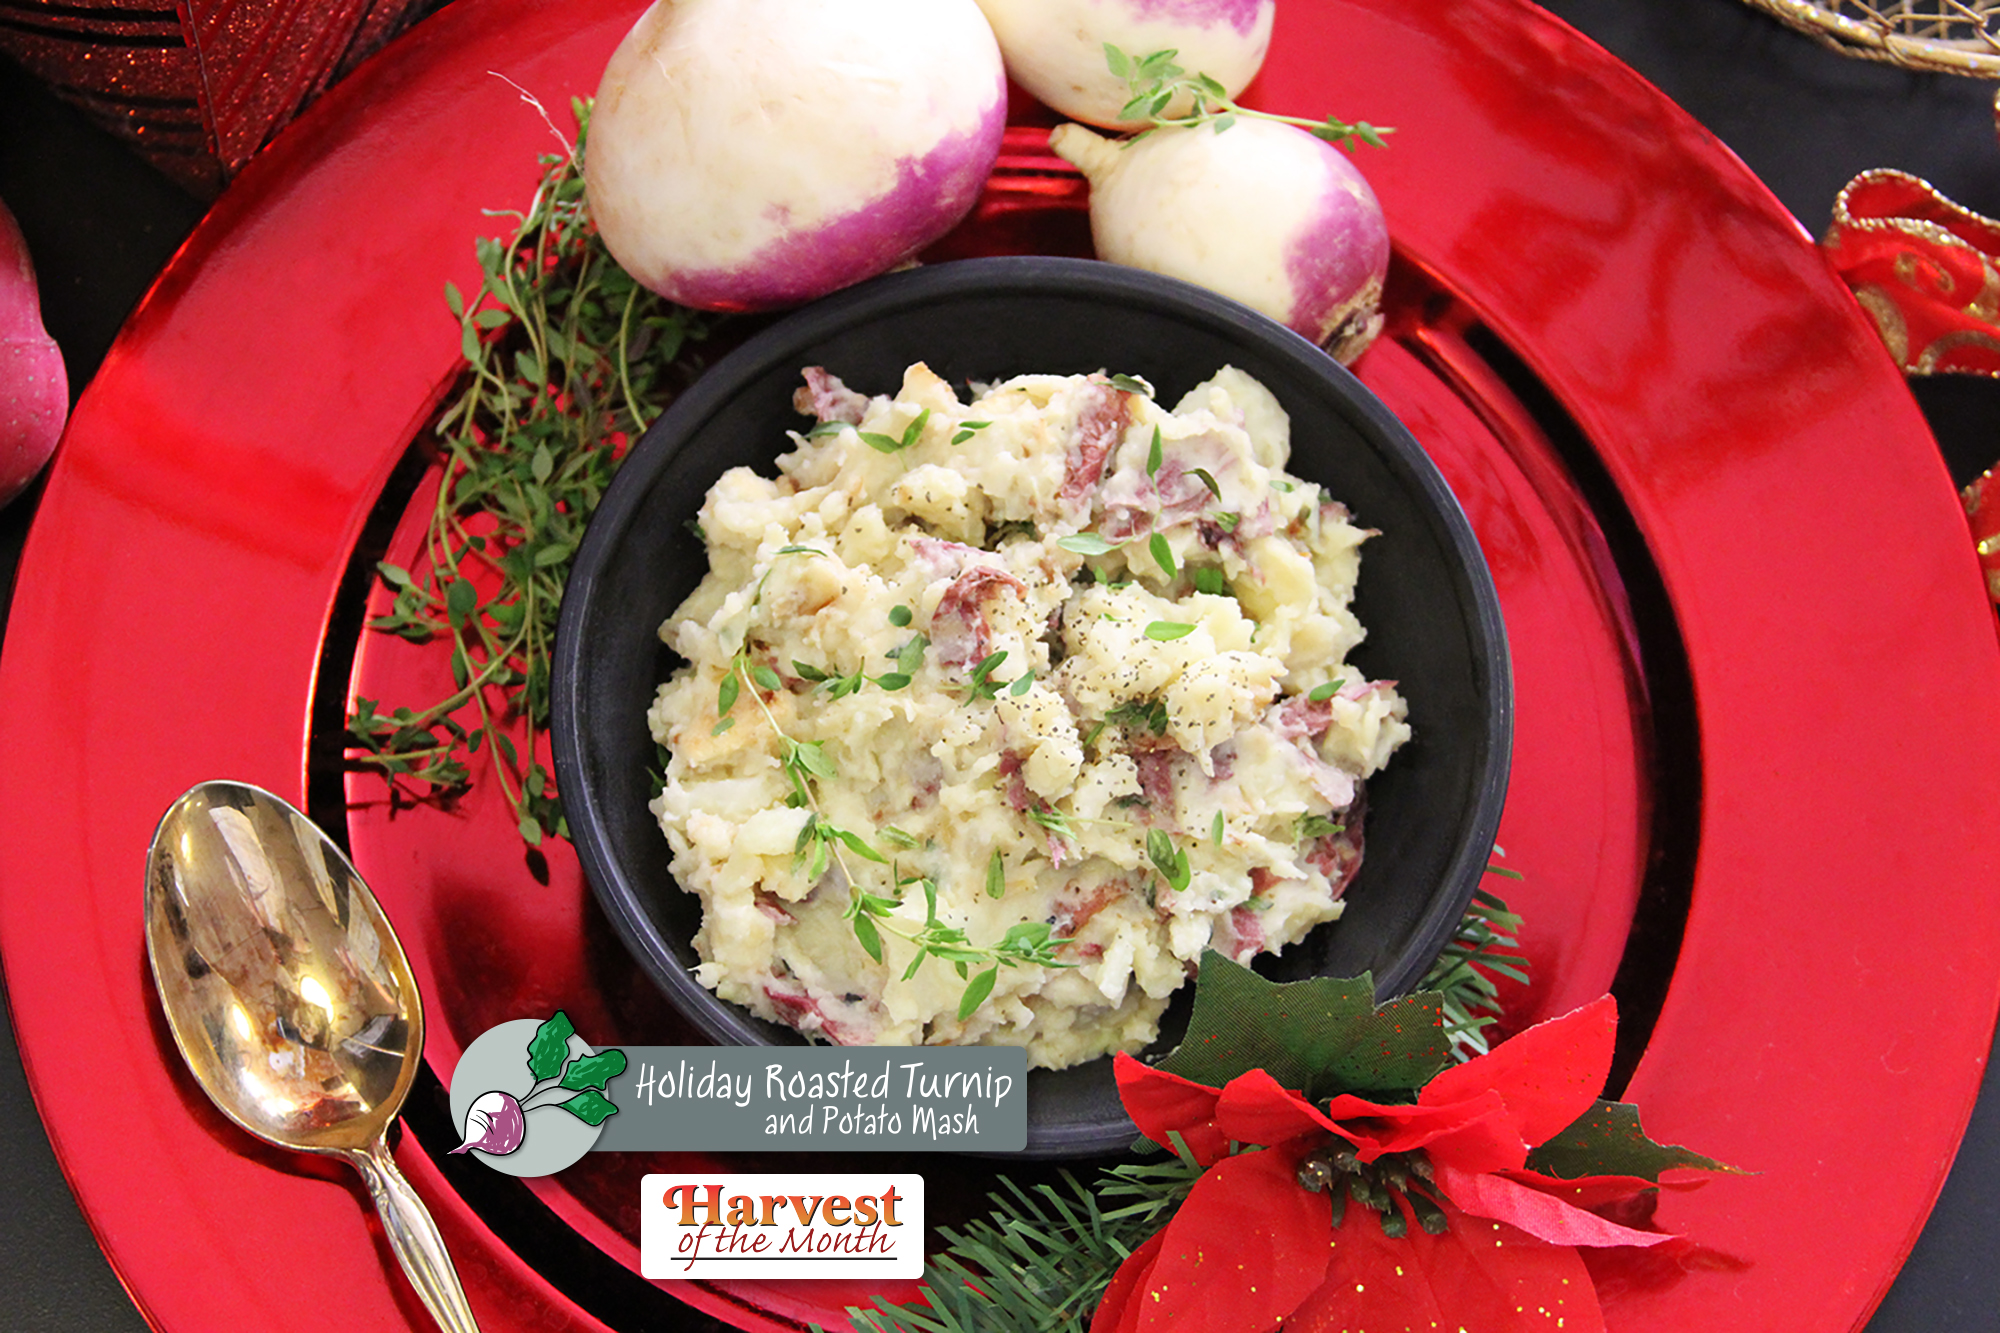 Harvest of the Month - Roasted Turnip Tater Mash  Photo: Katie Schmidt